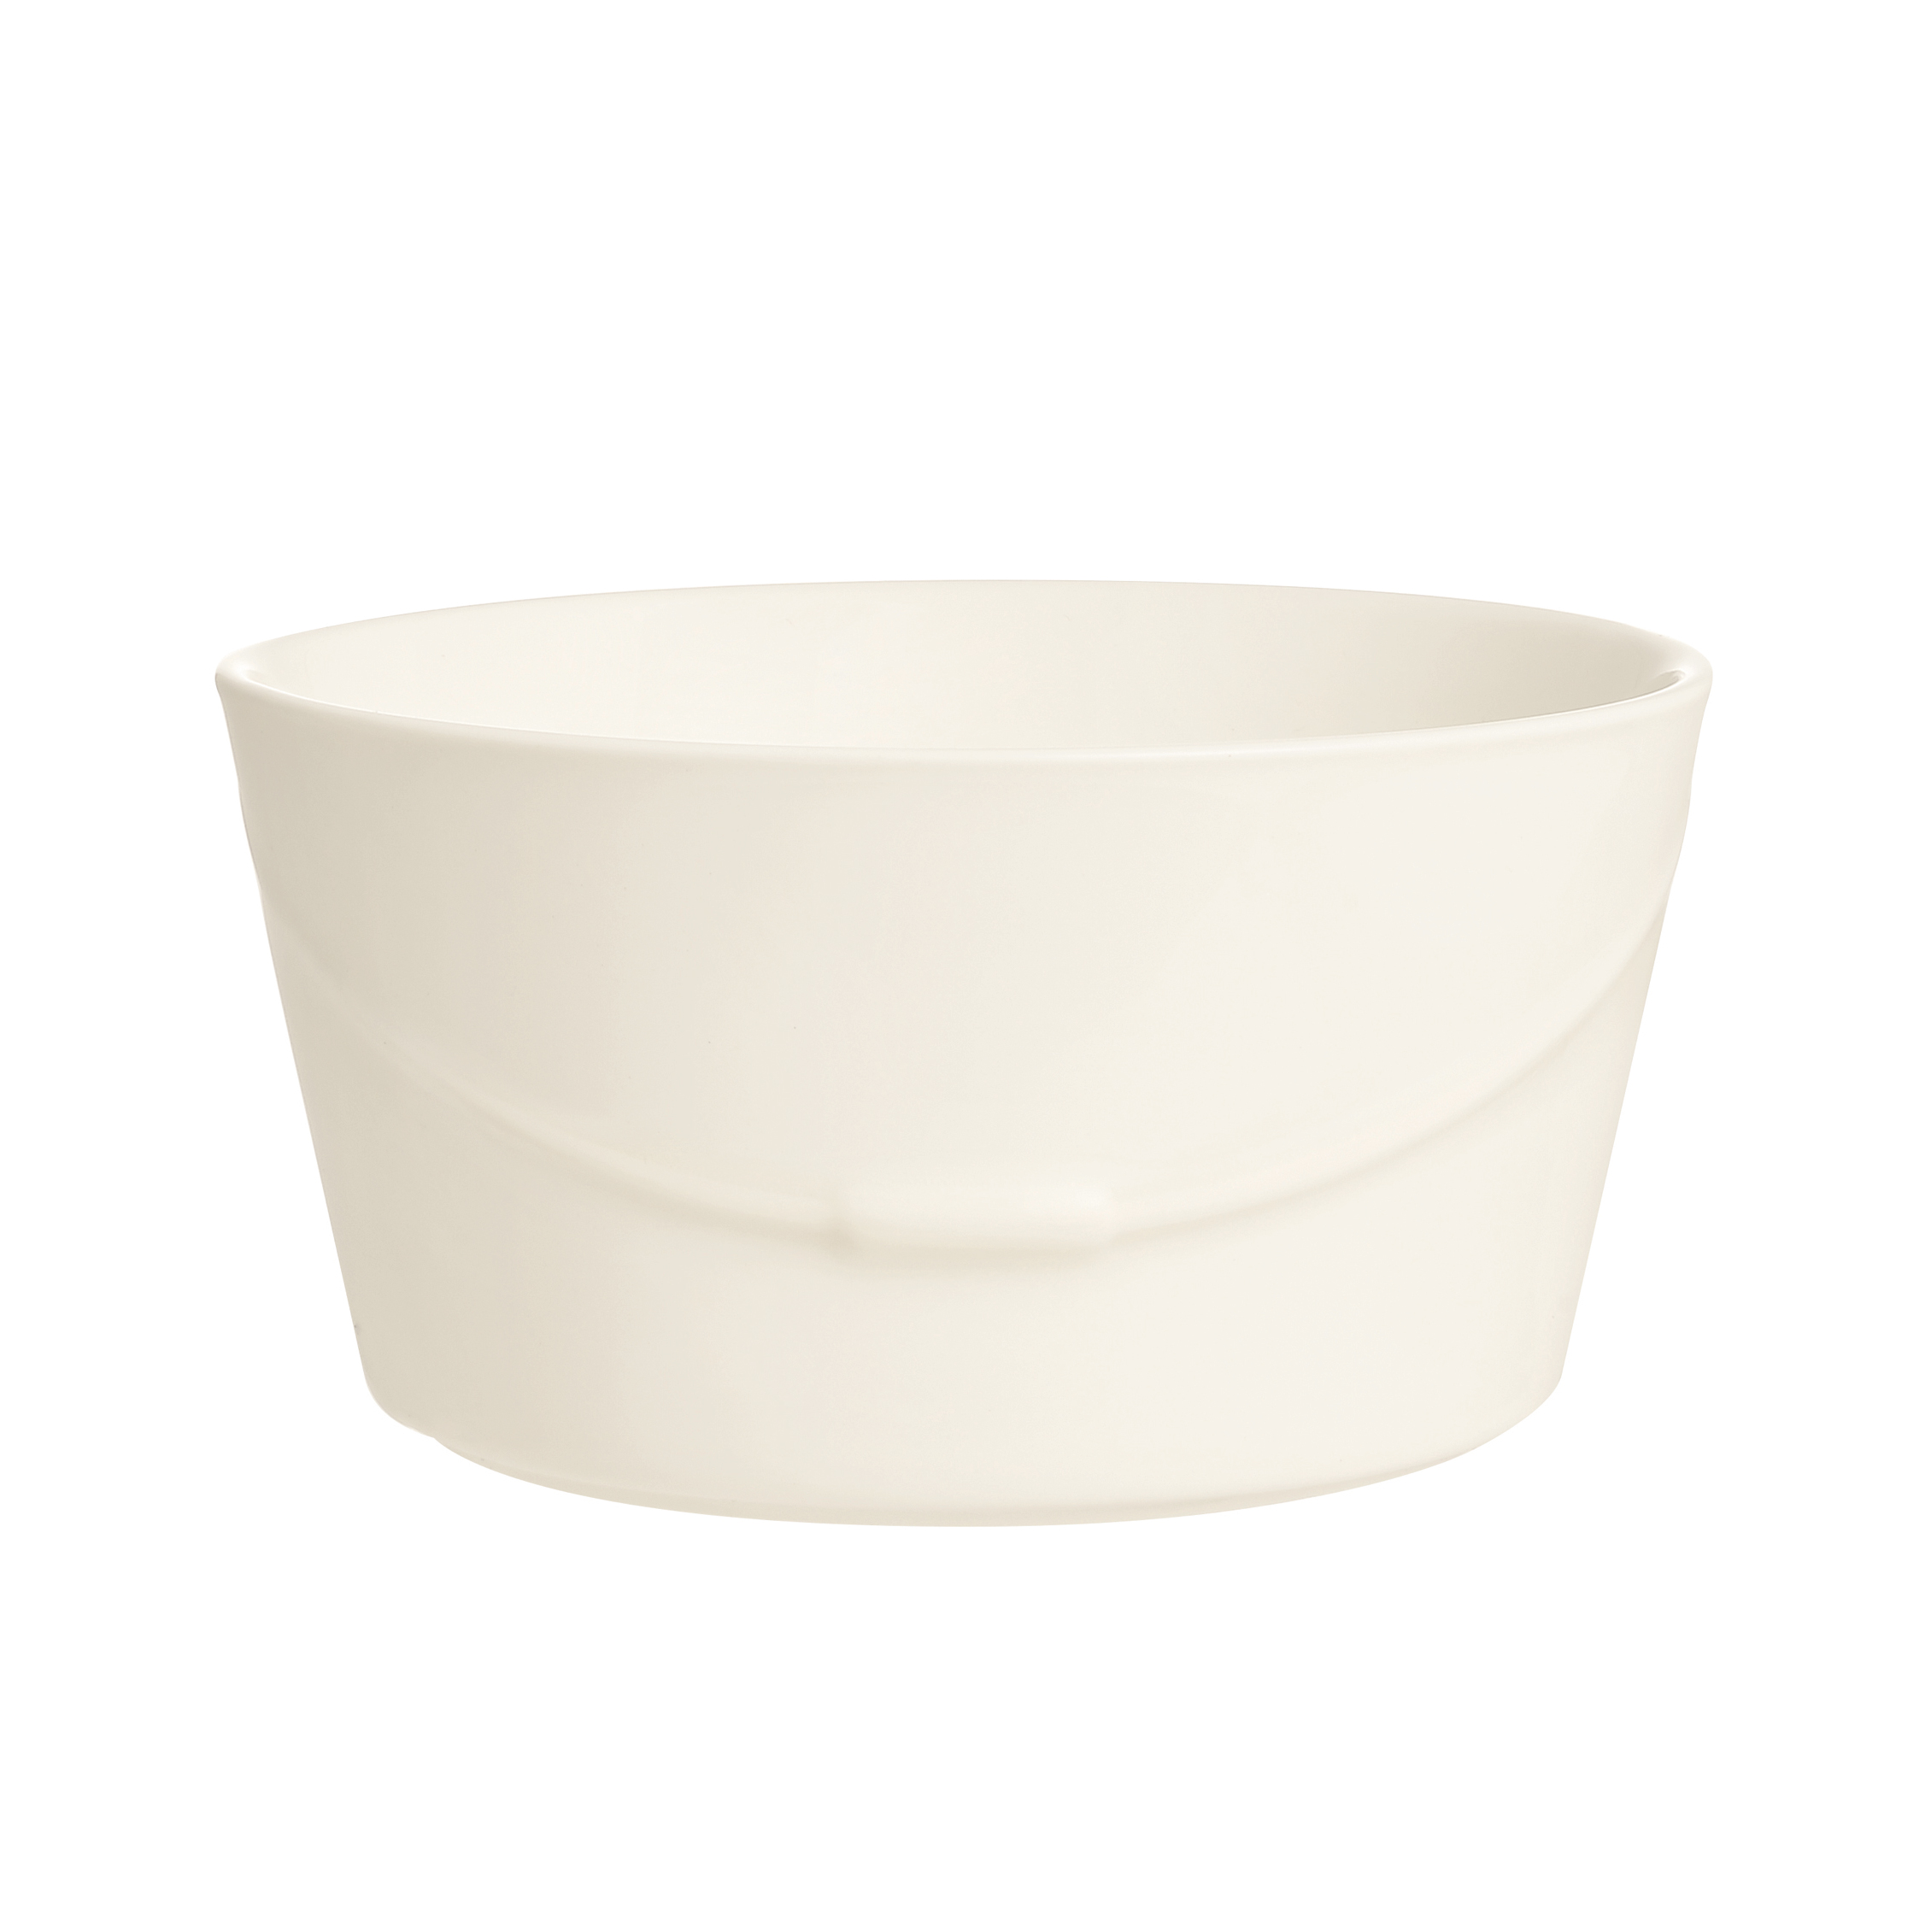 Cardinal N5934 china, bowl,  9 - 16 oz